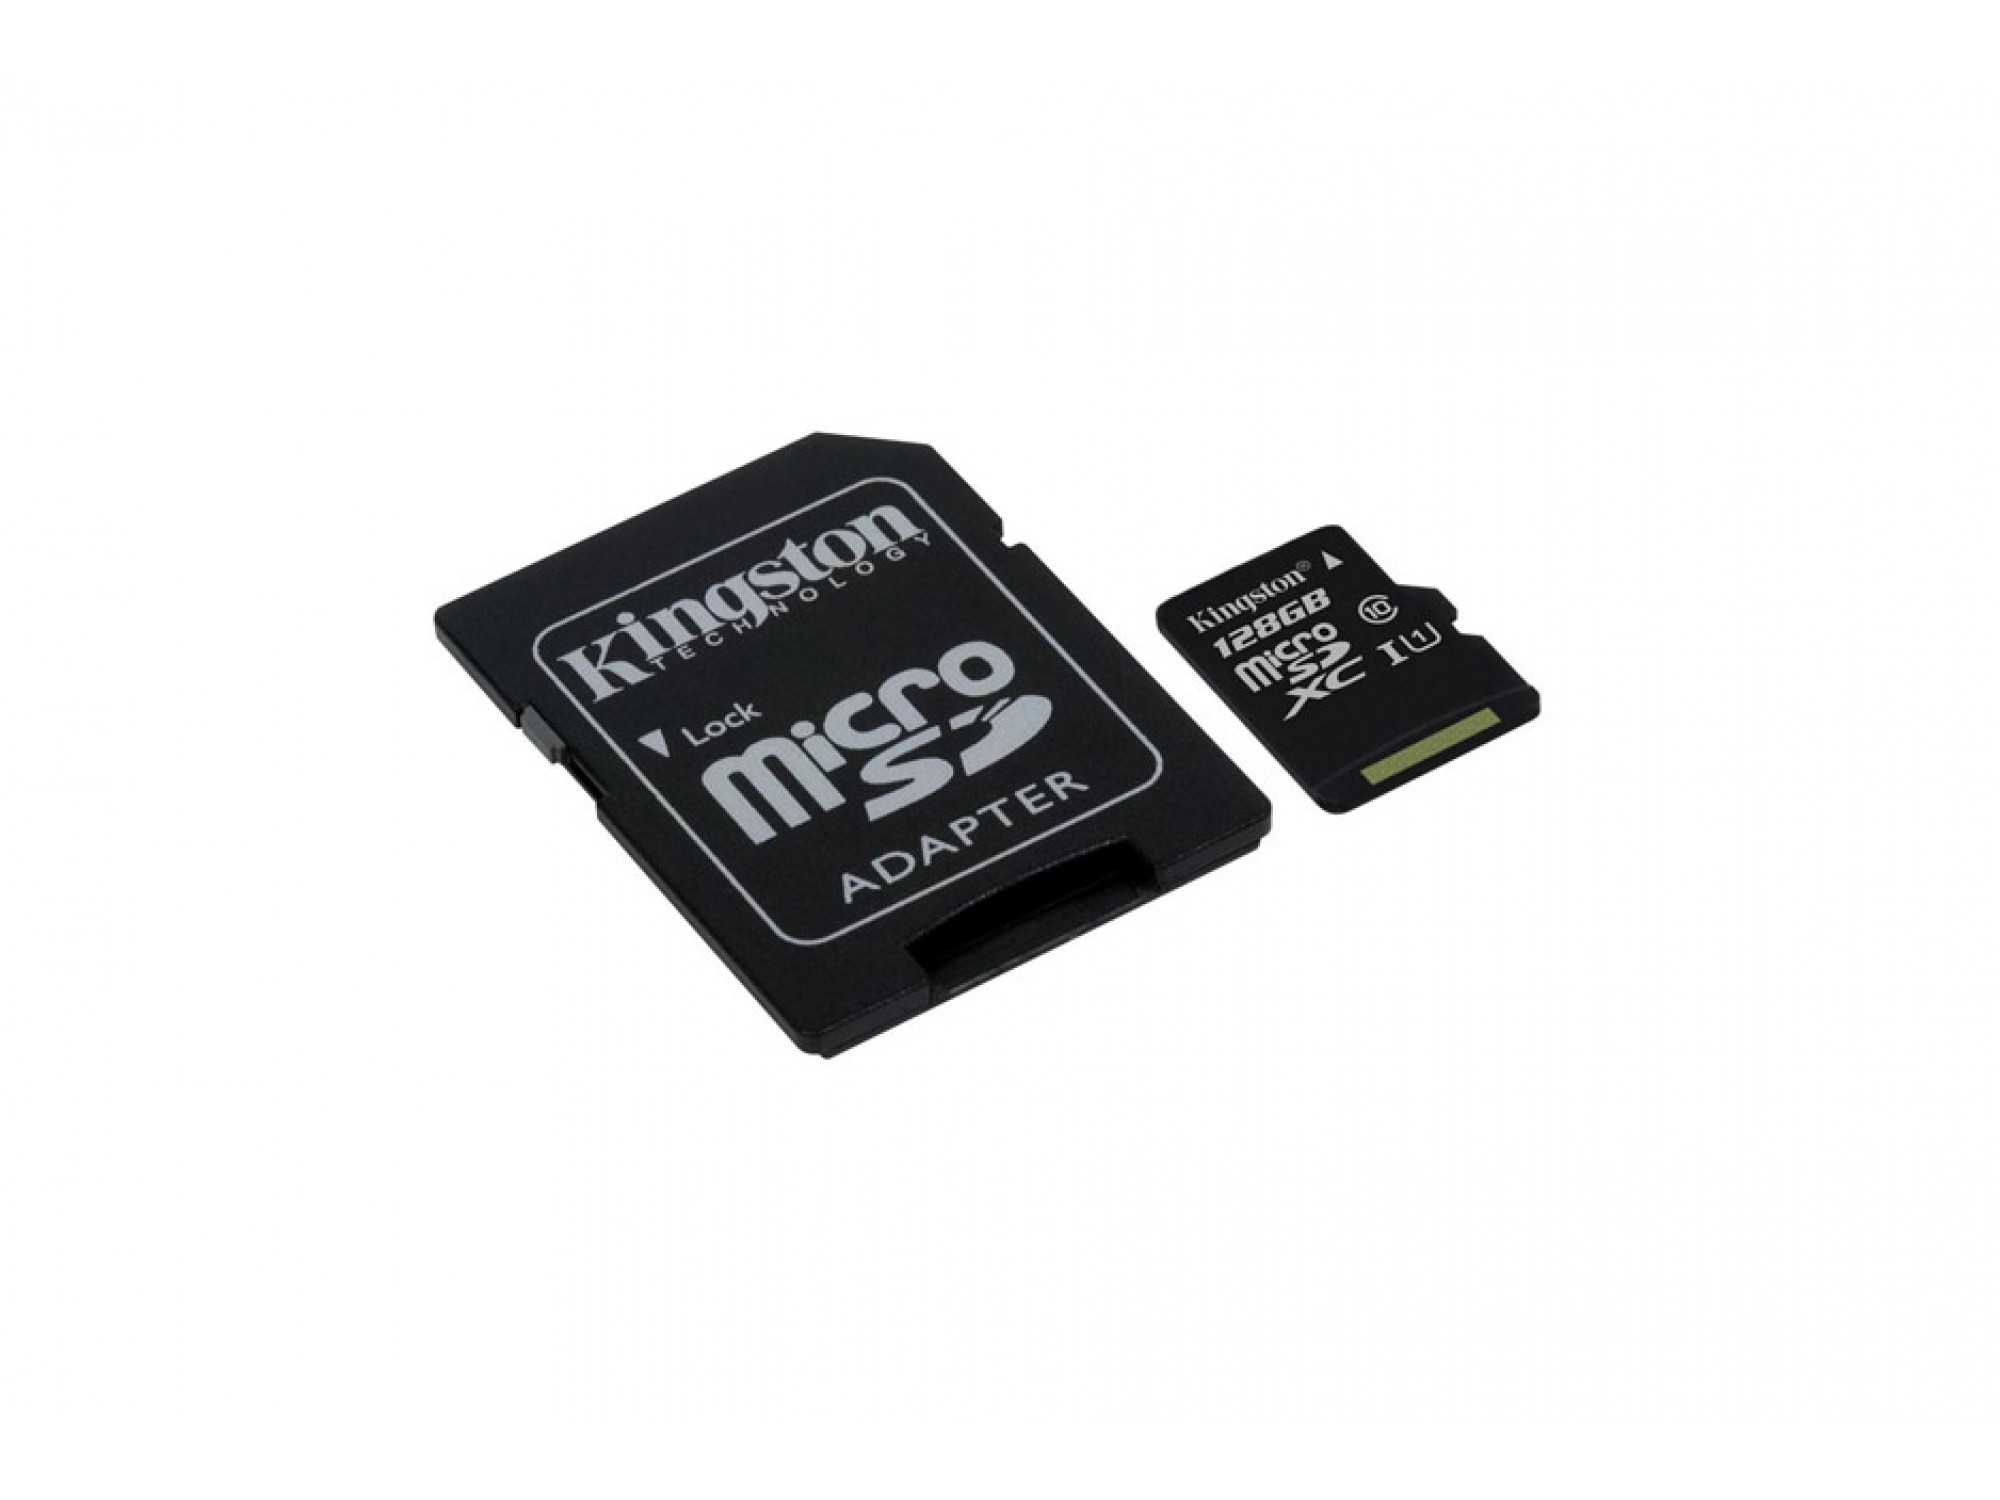 Kingston 128GB UHS-1 (U1) Micro SD Memory Card